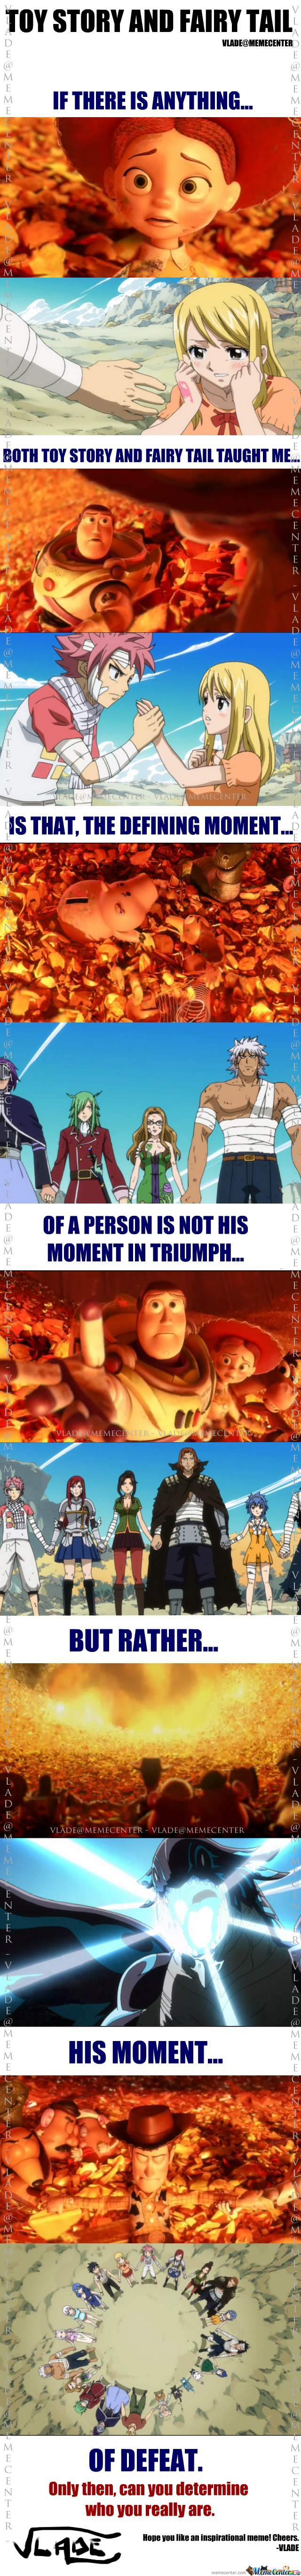 Toy Story And Fairy Tail